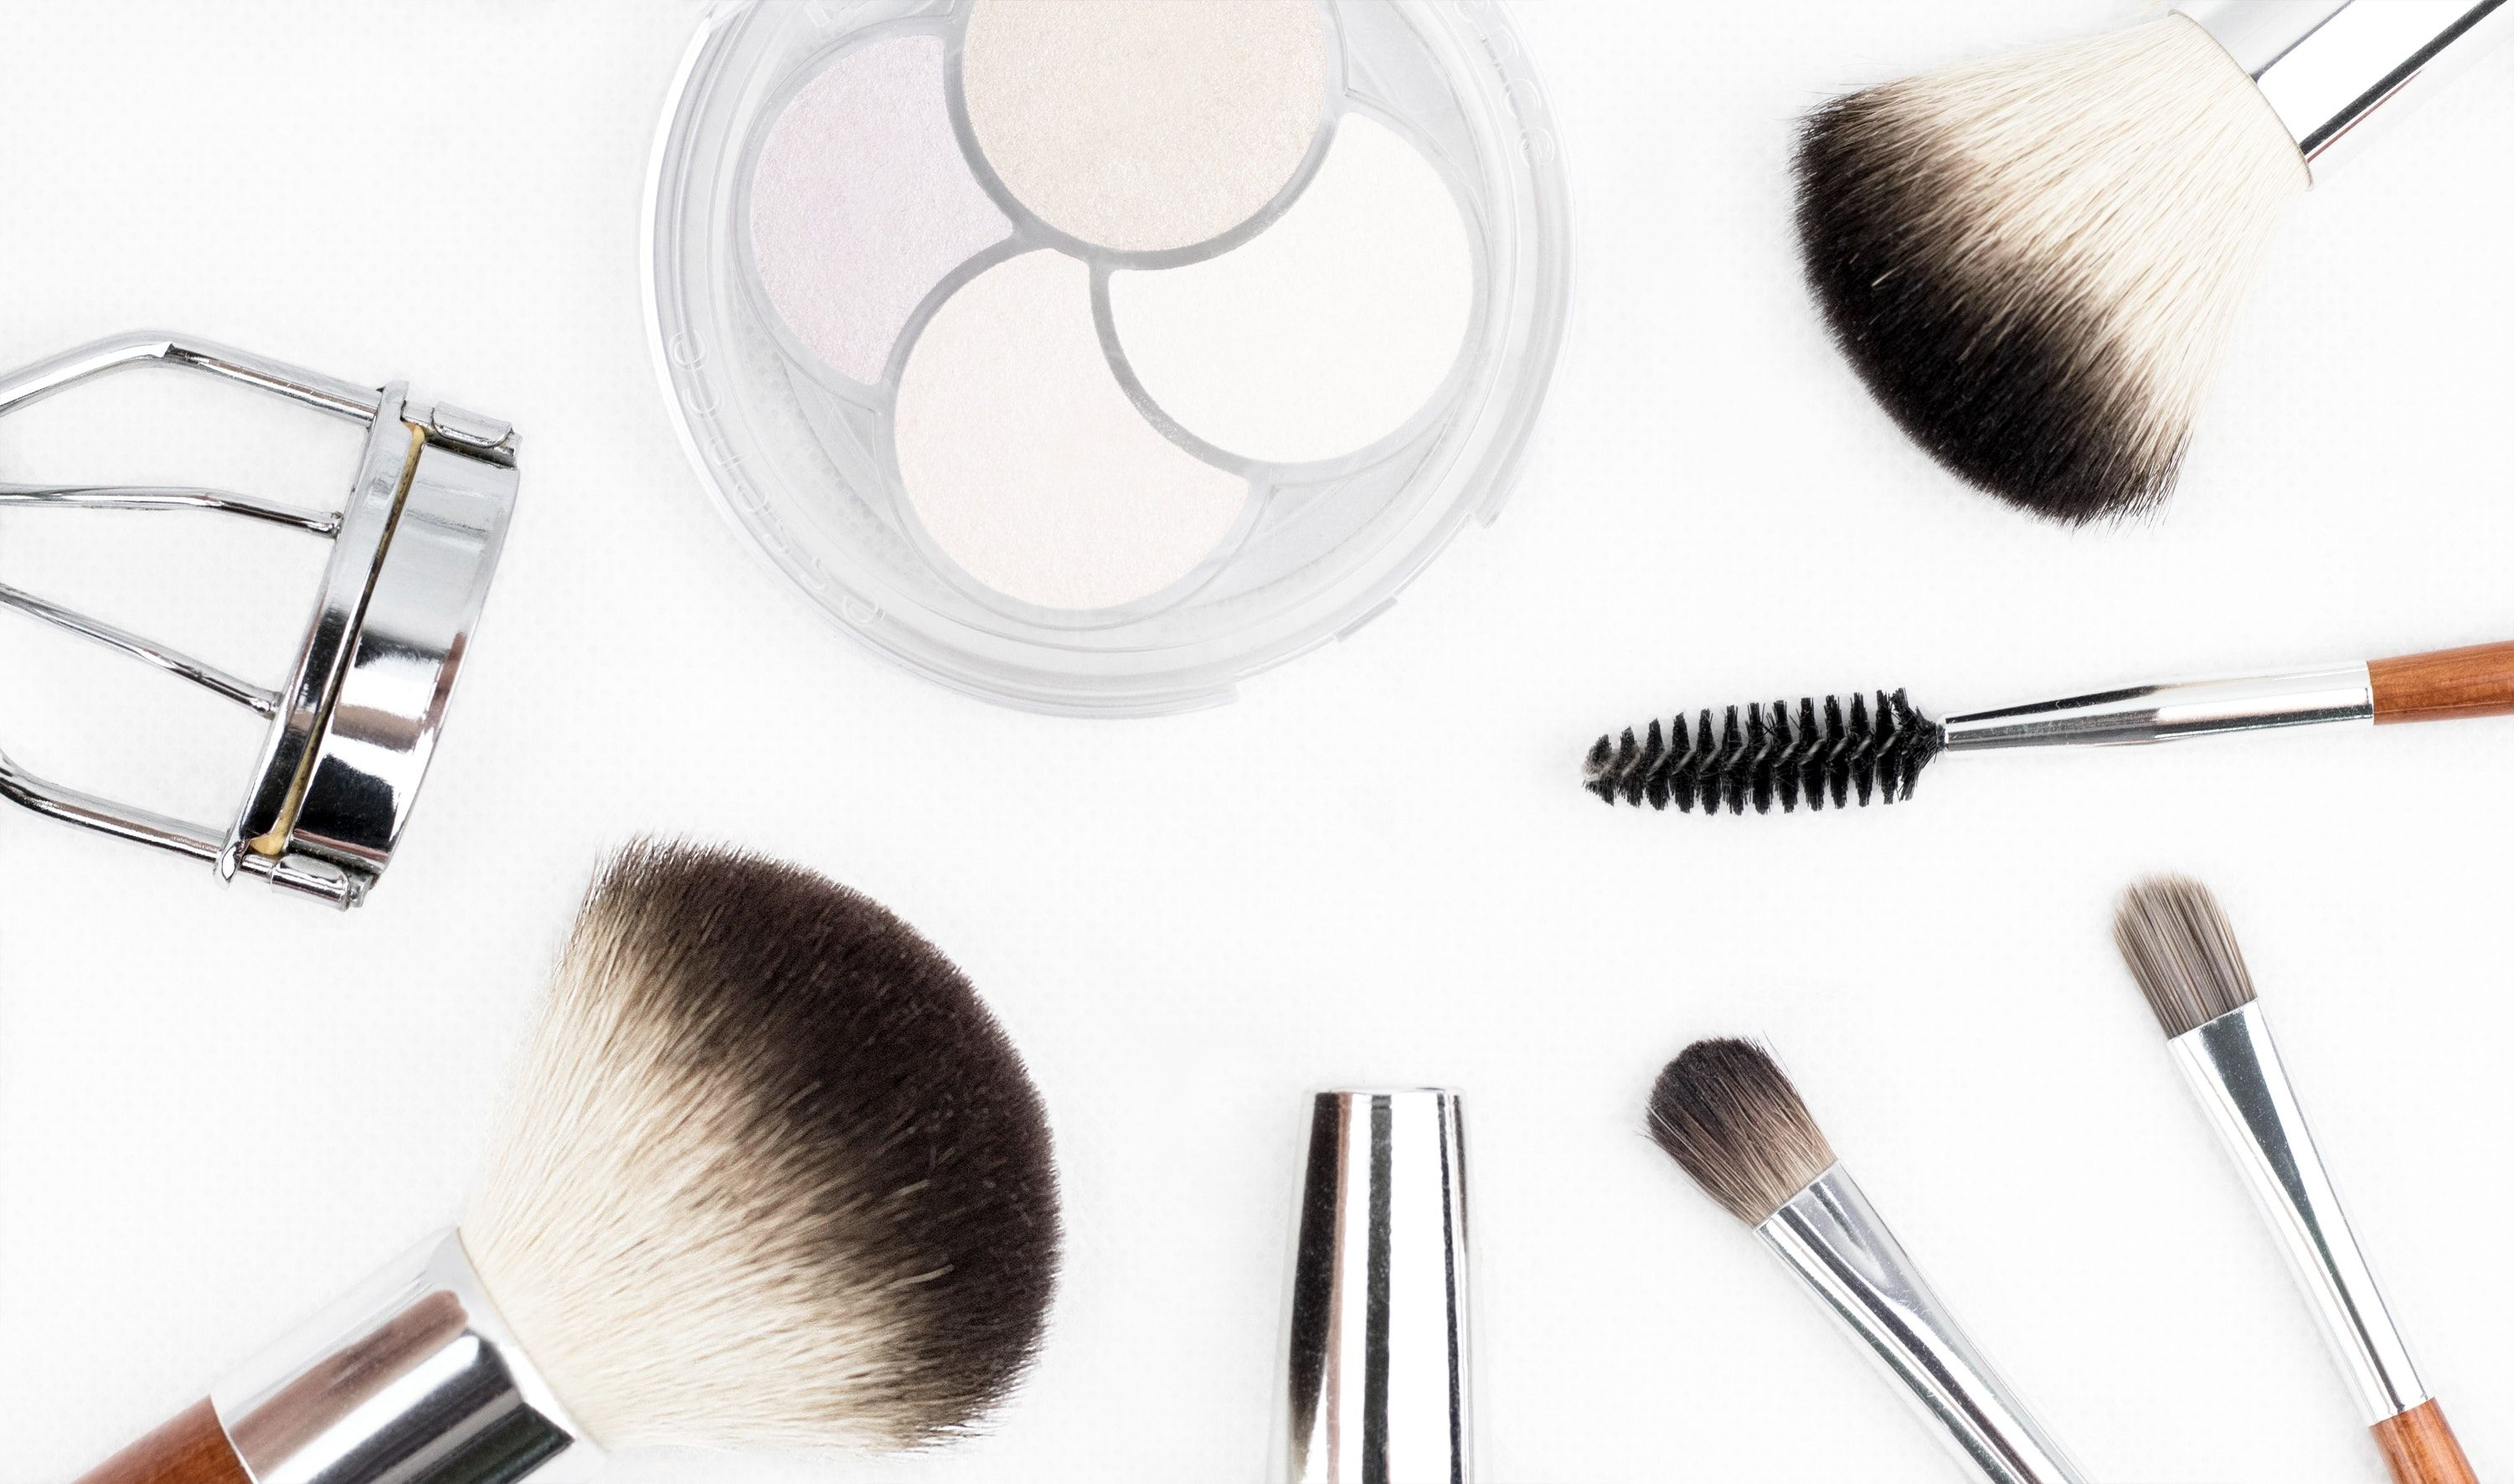 Choose halal cosmetics because they are natural and chemical